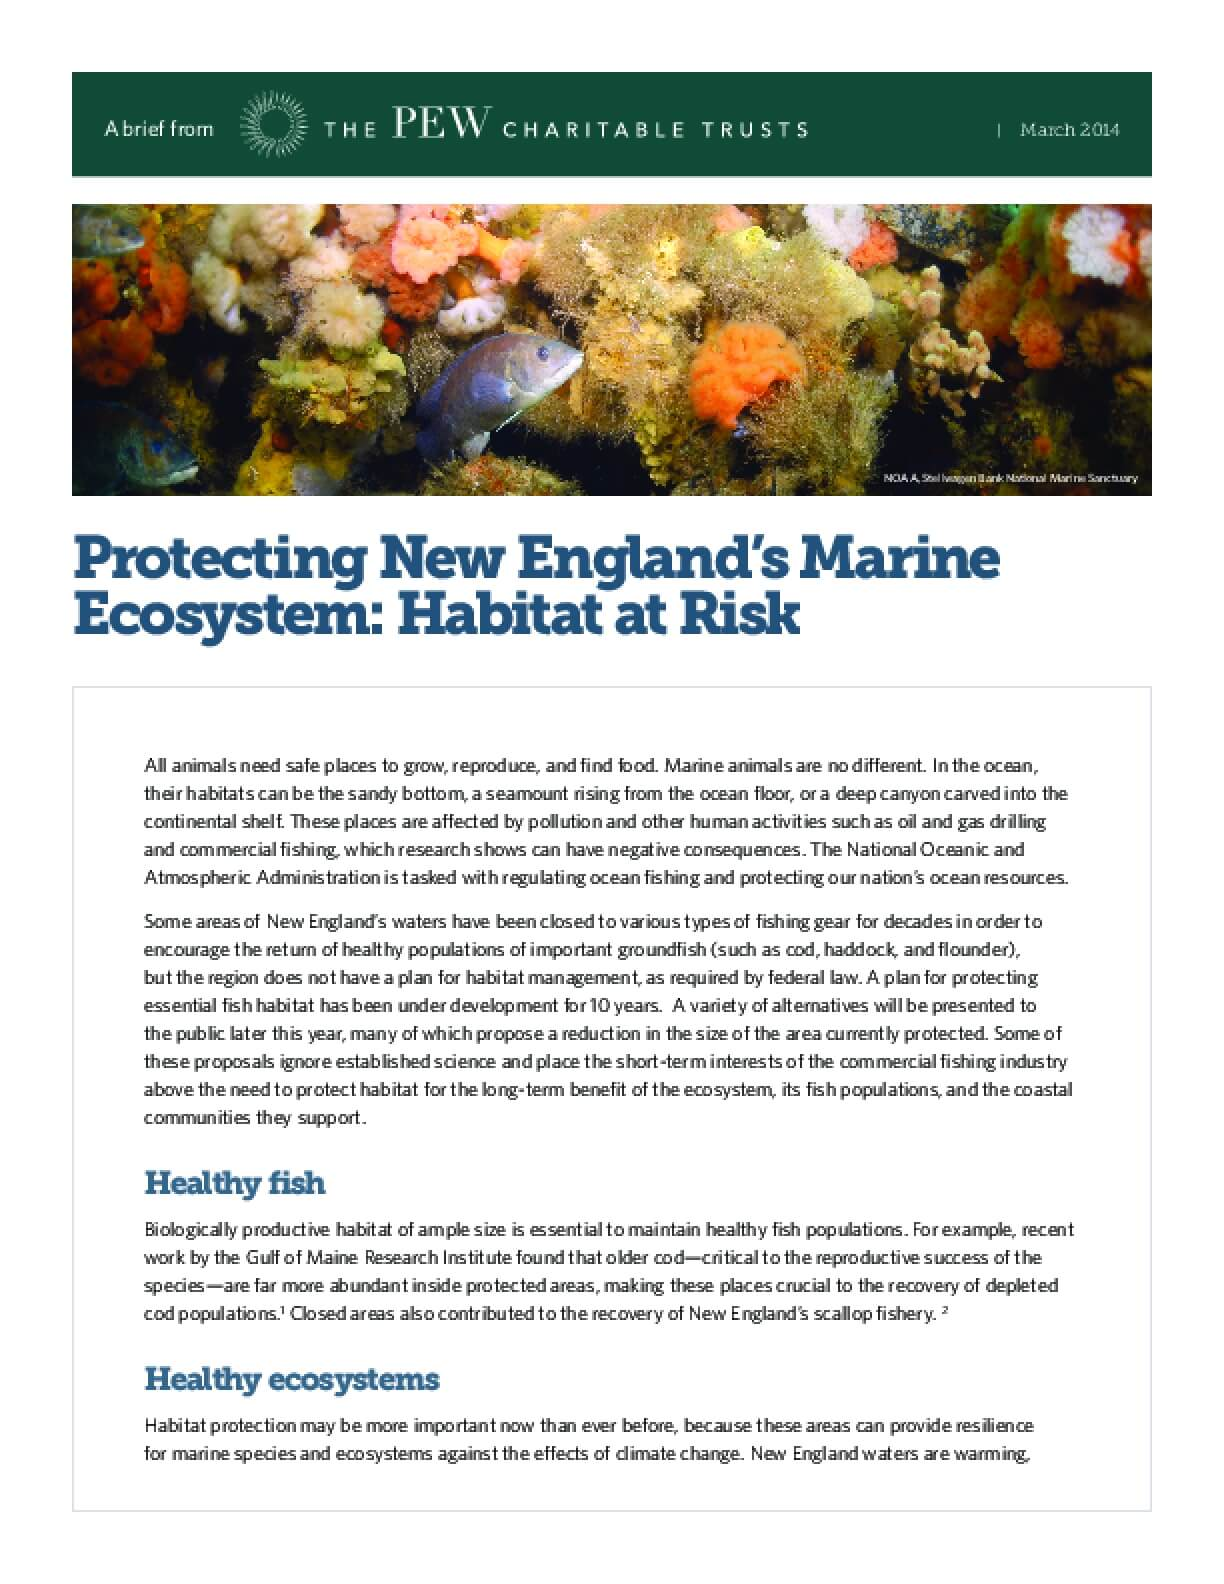 Protecting New England's Marine Ecosystem: Habitat at Risk